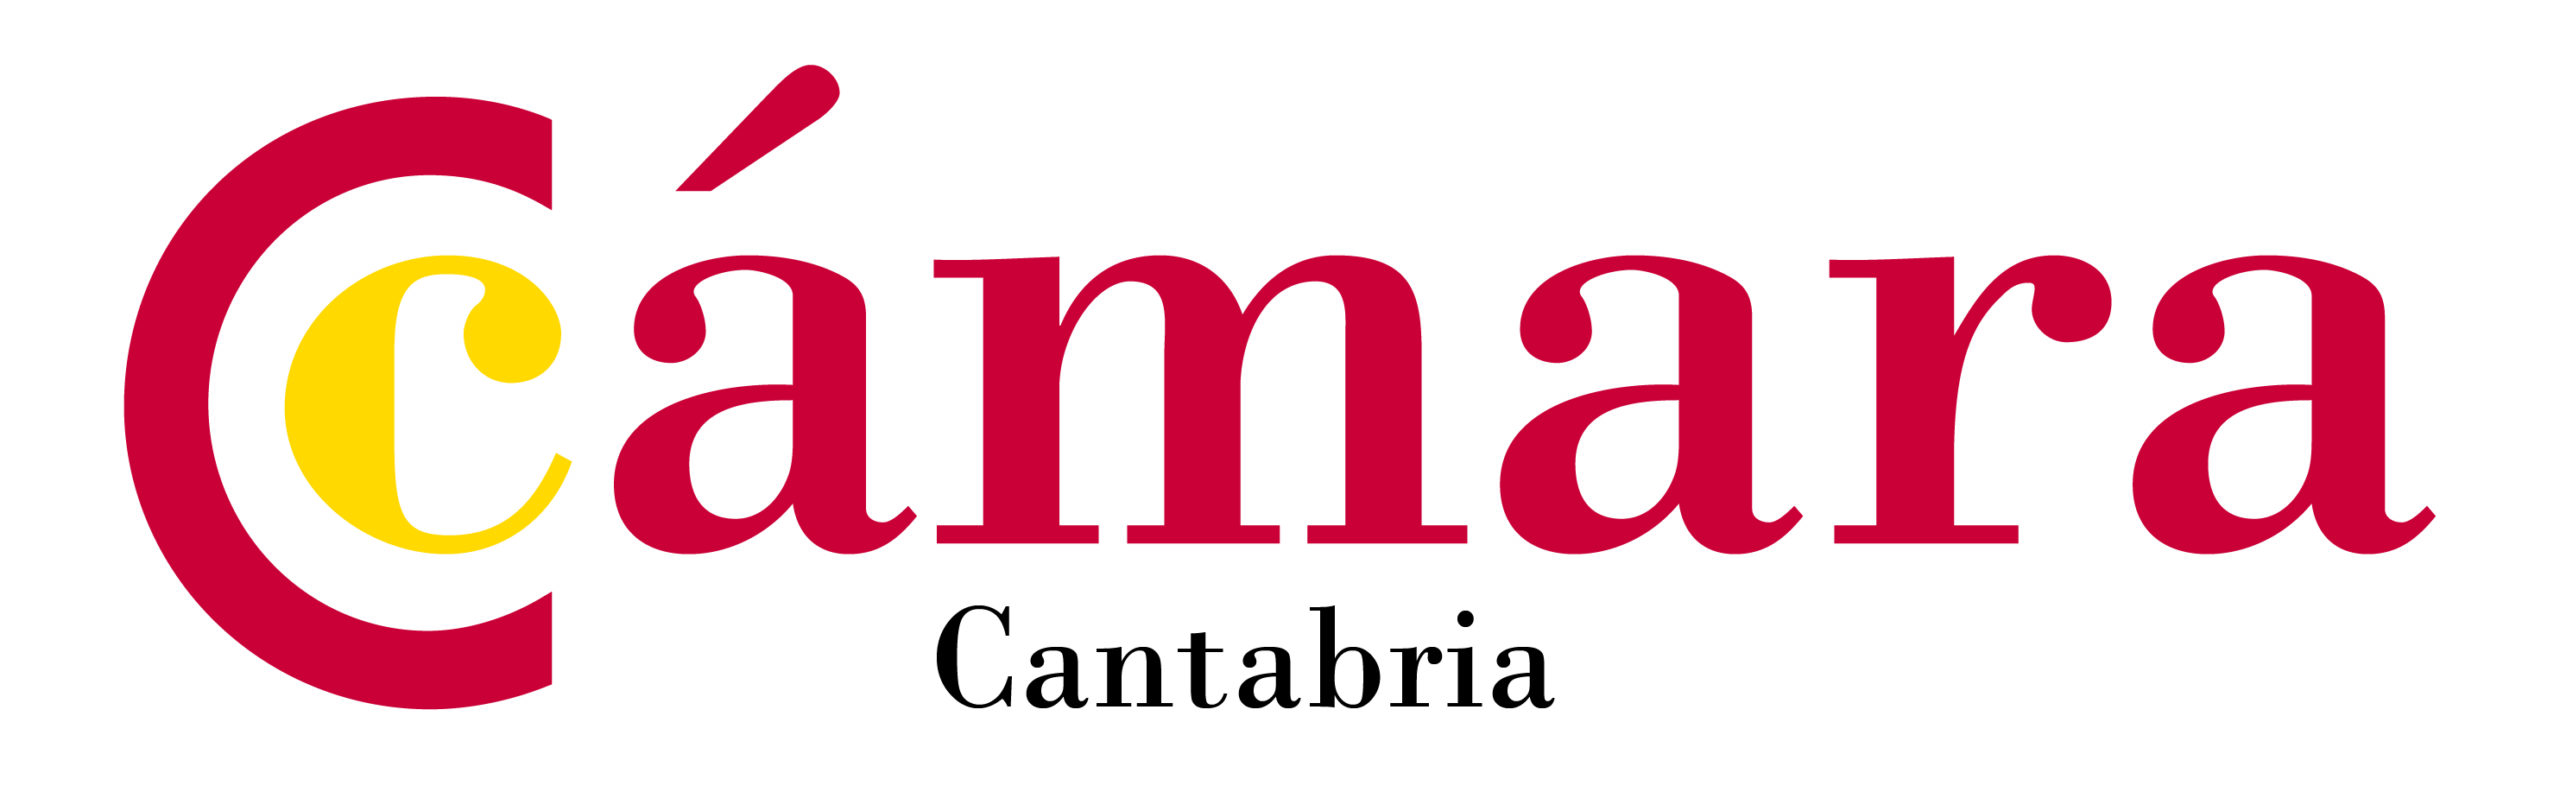 https://europeanplasticspact.org/wp-content/uploads/2020/03/Chamber-of-Commerce-of-Cantabria-scaled.jpg